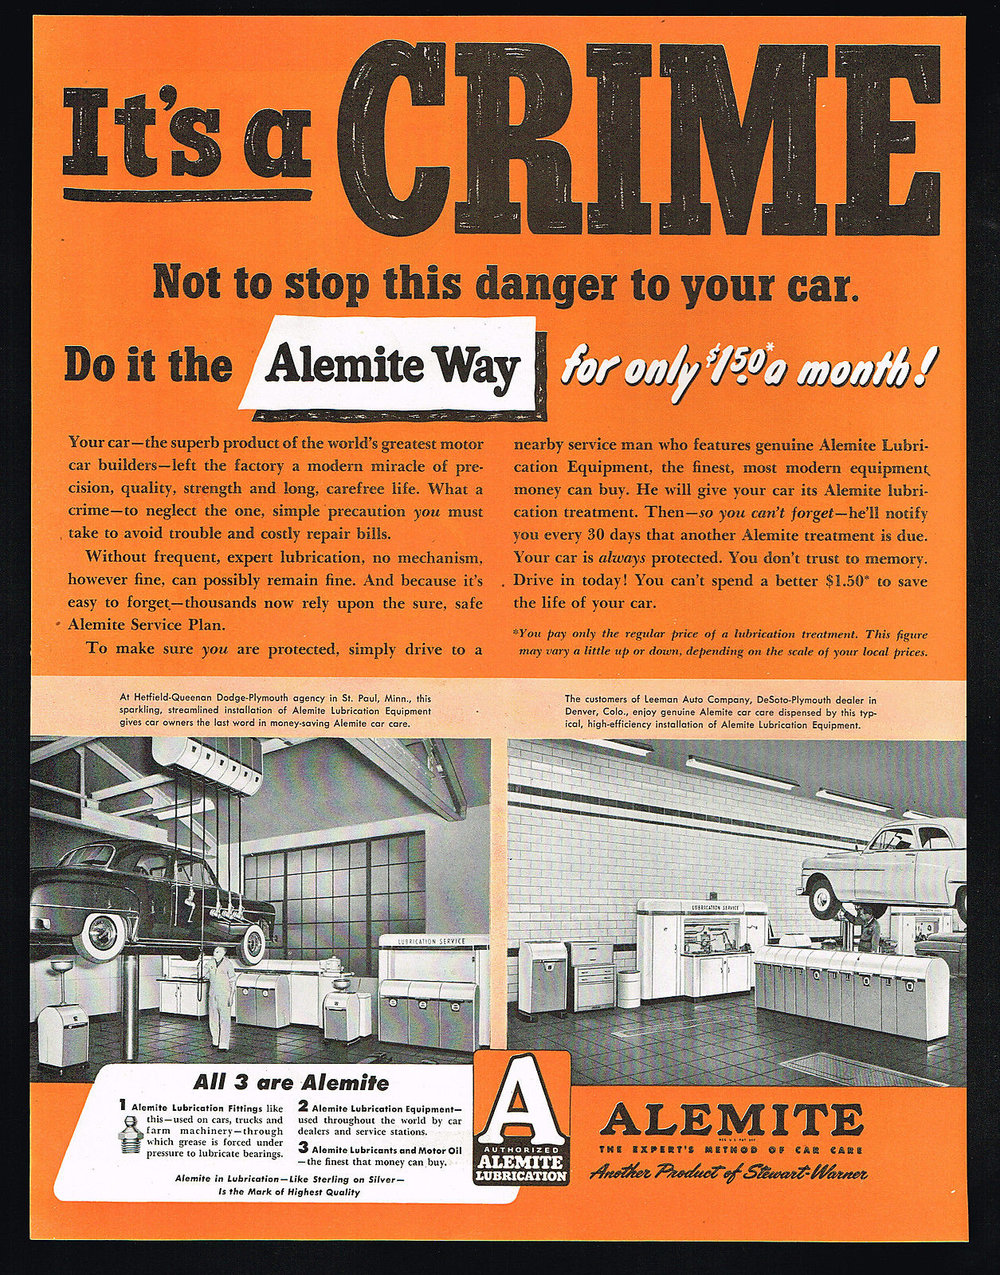 Alemite_Ad_1951_benches.jpg